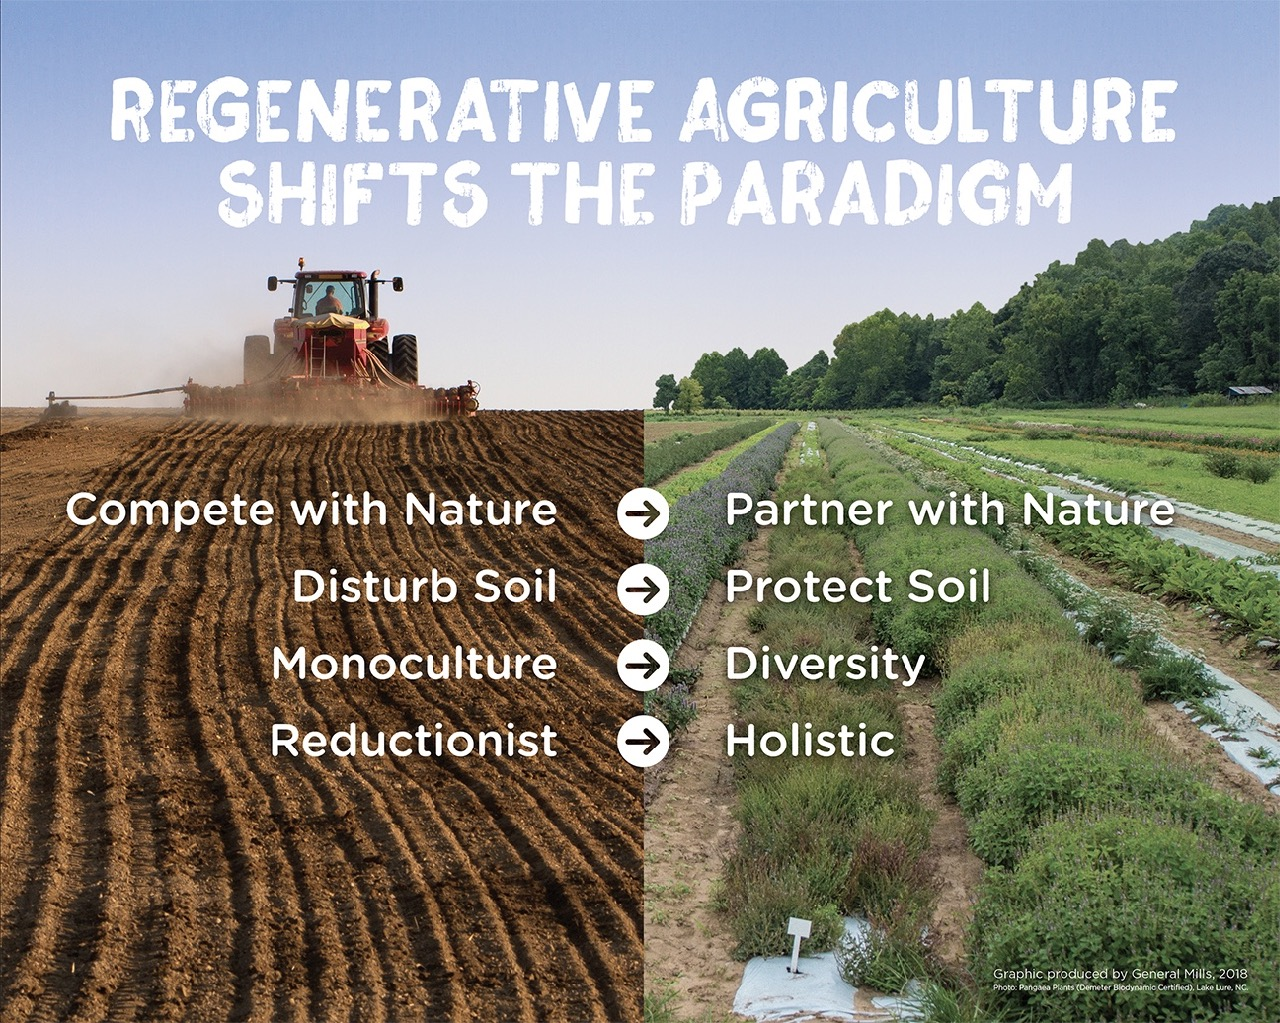 General Mills Regenerative Agriculture - Regeneration Newsroom